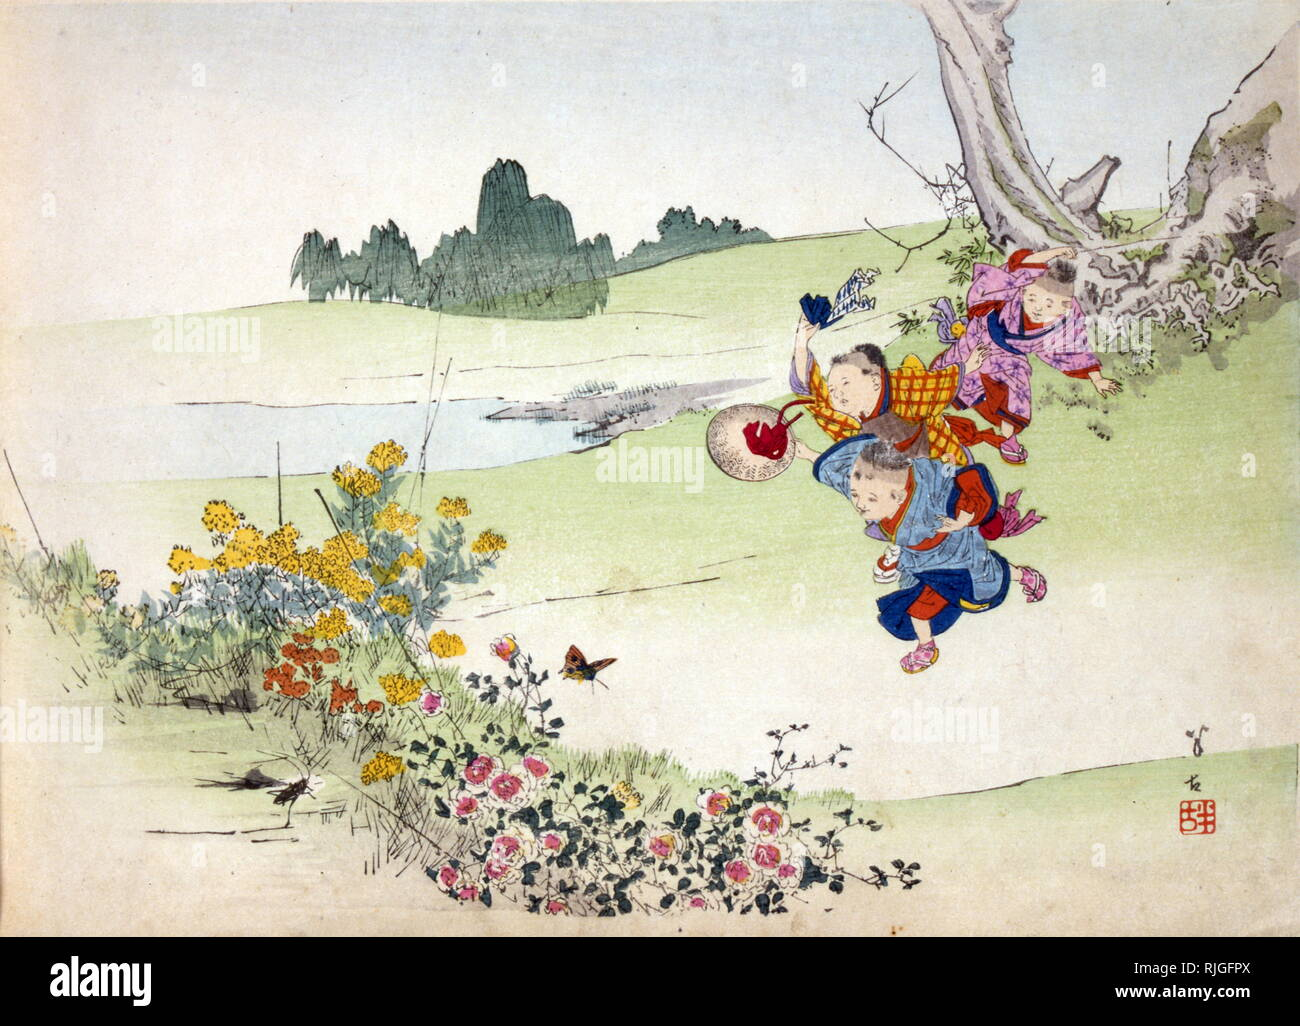 Japanese illustration of a fable by Jean-Pierre Claris de Florian (1755 - 1794), French poet and romance writer - Stock Image